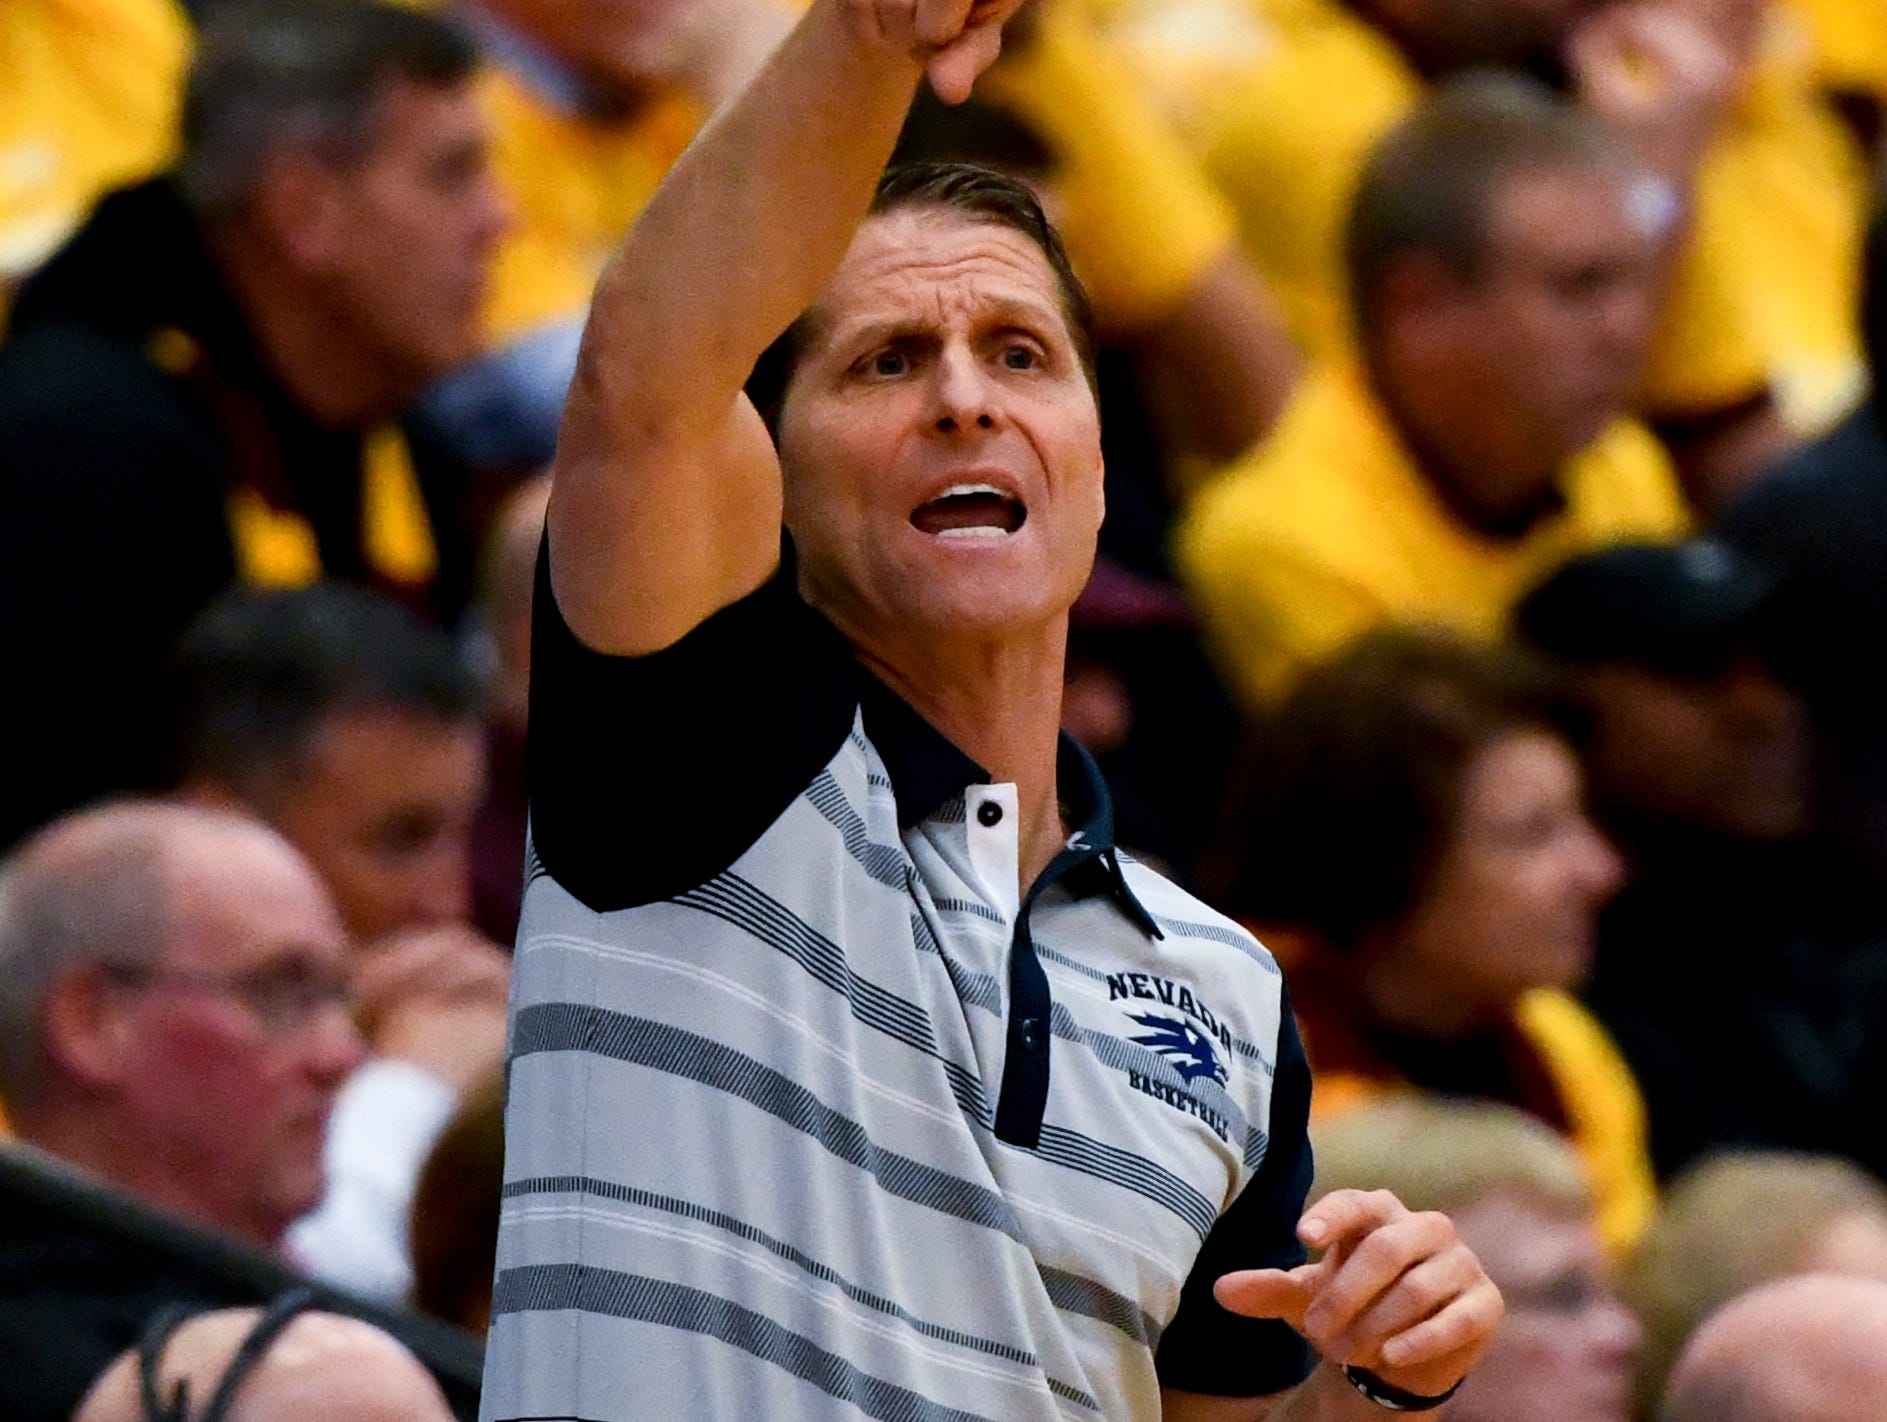 Nevada head coach Eric Musselman directs his team against Loyola of Chicago during the first half of an NCAA college basketball game against Nevada in Chicago, Tuesday, Nov. 27, 2018. (AP Photo/Matt Marton)